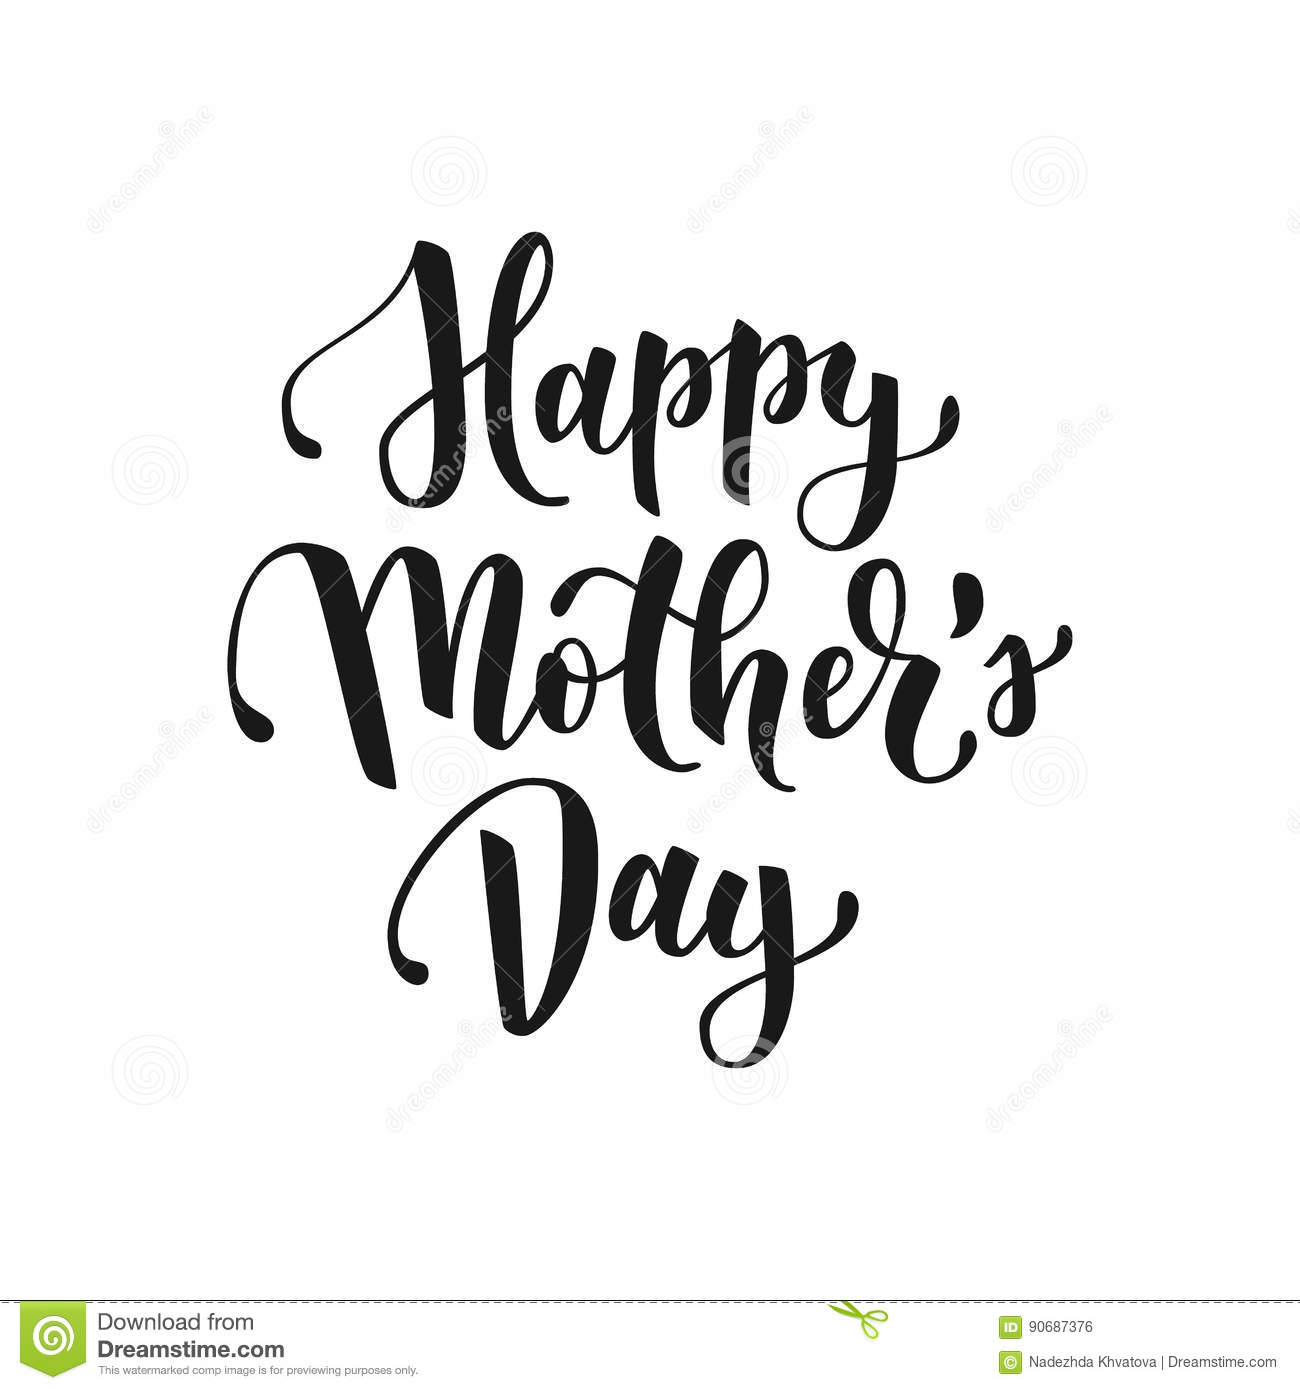 Happy mothers day hand drawn lettering for greeting card or banner royalty free vector download m4hsunfo Gallery